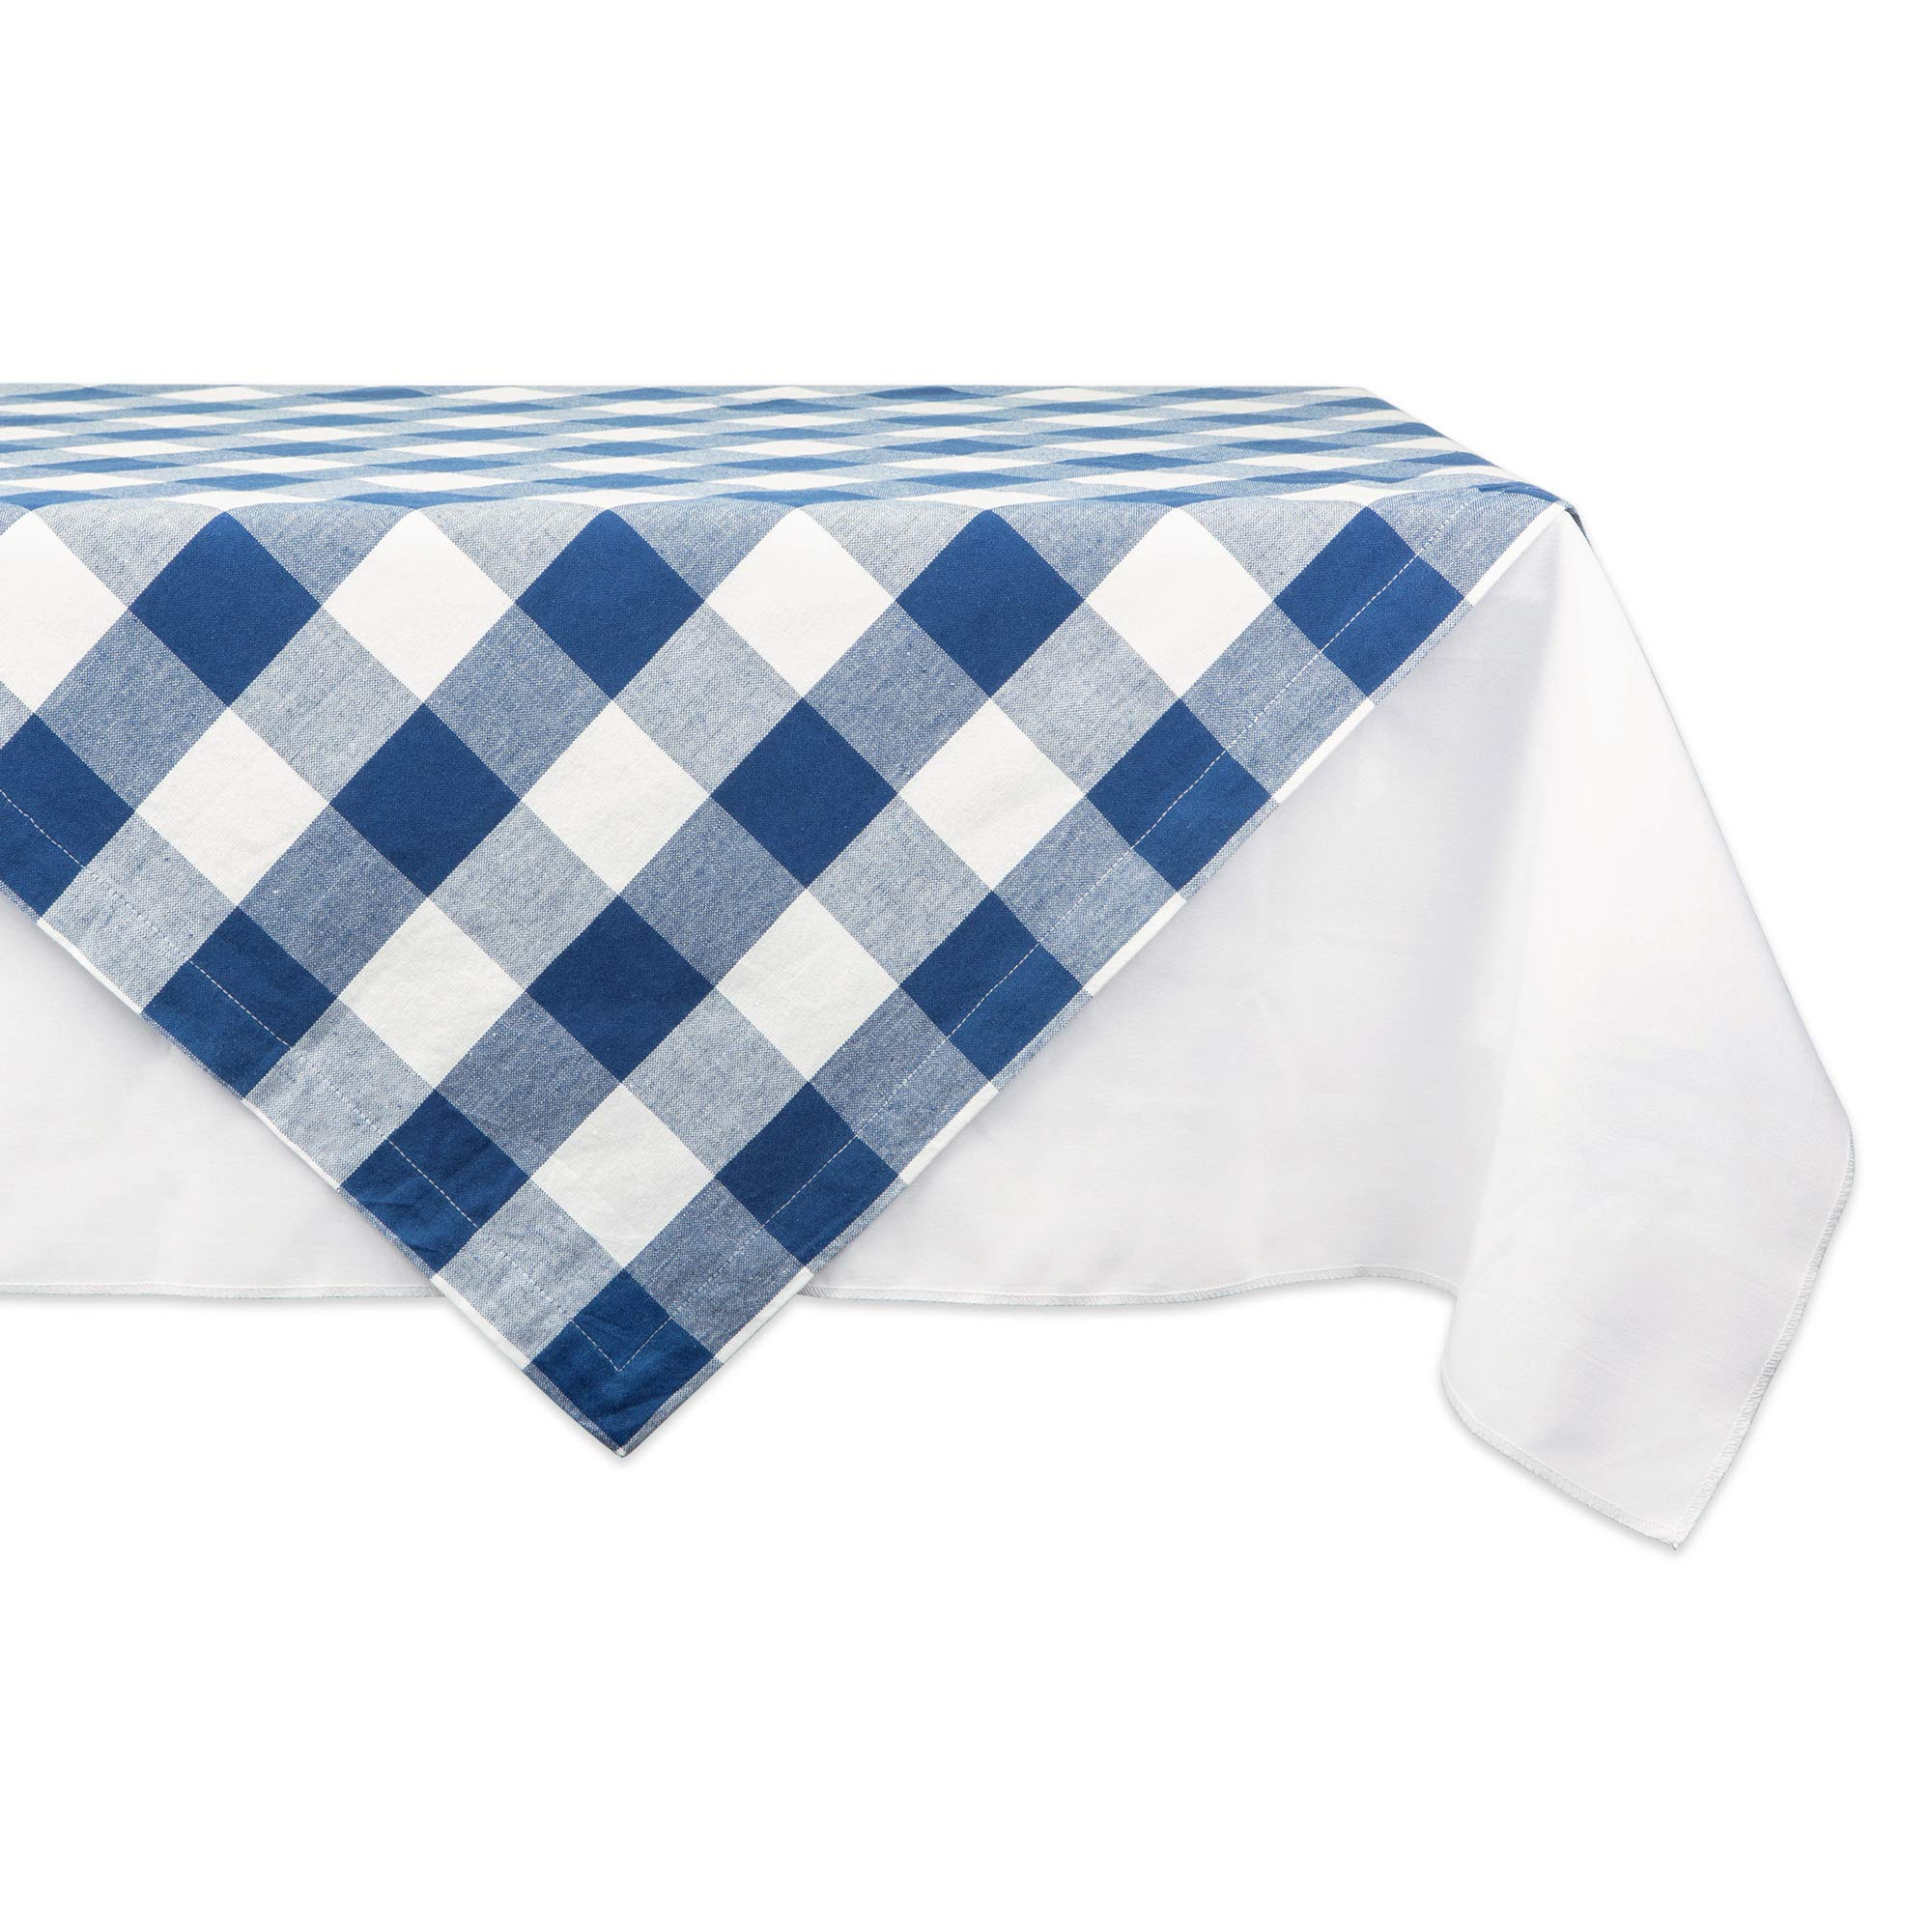 DII Classic Gingham Check Tabletop Collection 100% Cotton Machine Washable, for Spring, Summer, Everyday Use, Entertaining and Family Gatherings, Table Topper, 40x40, Navy & Cream